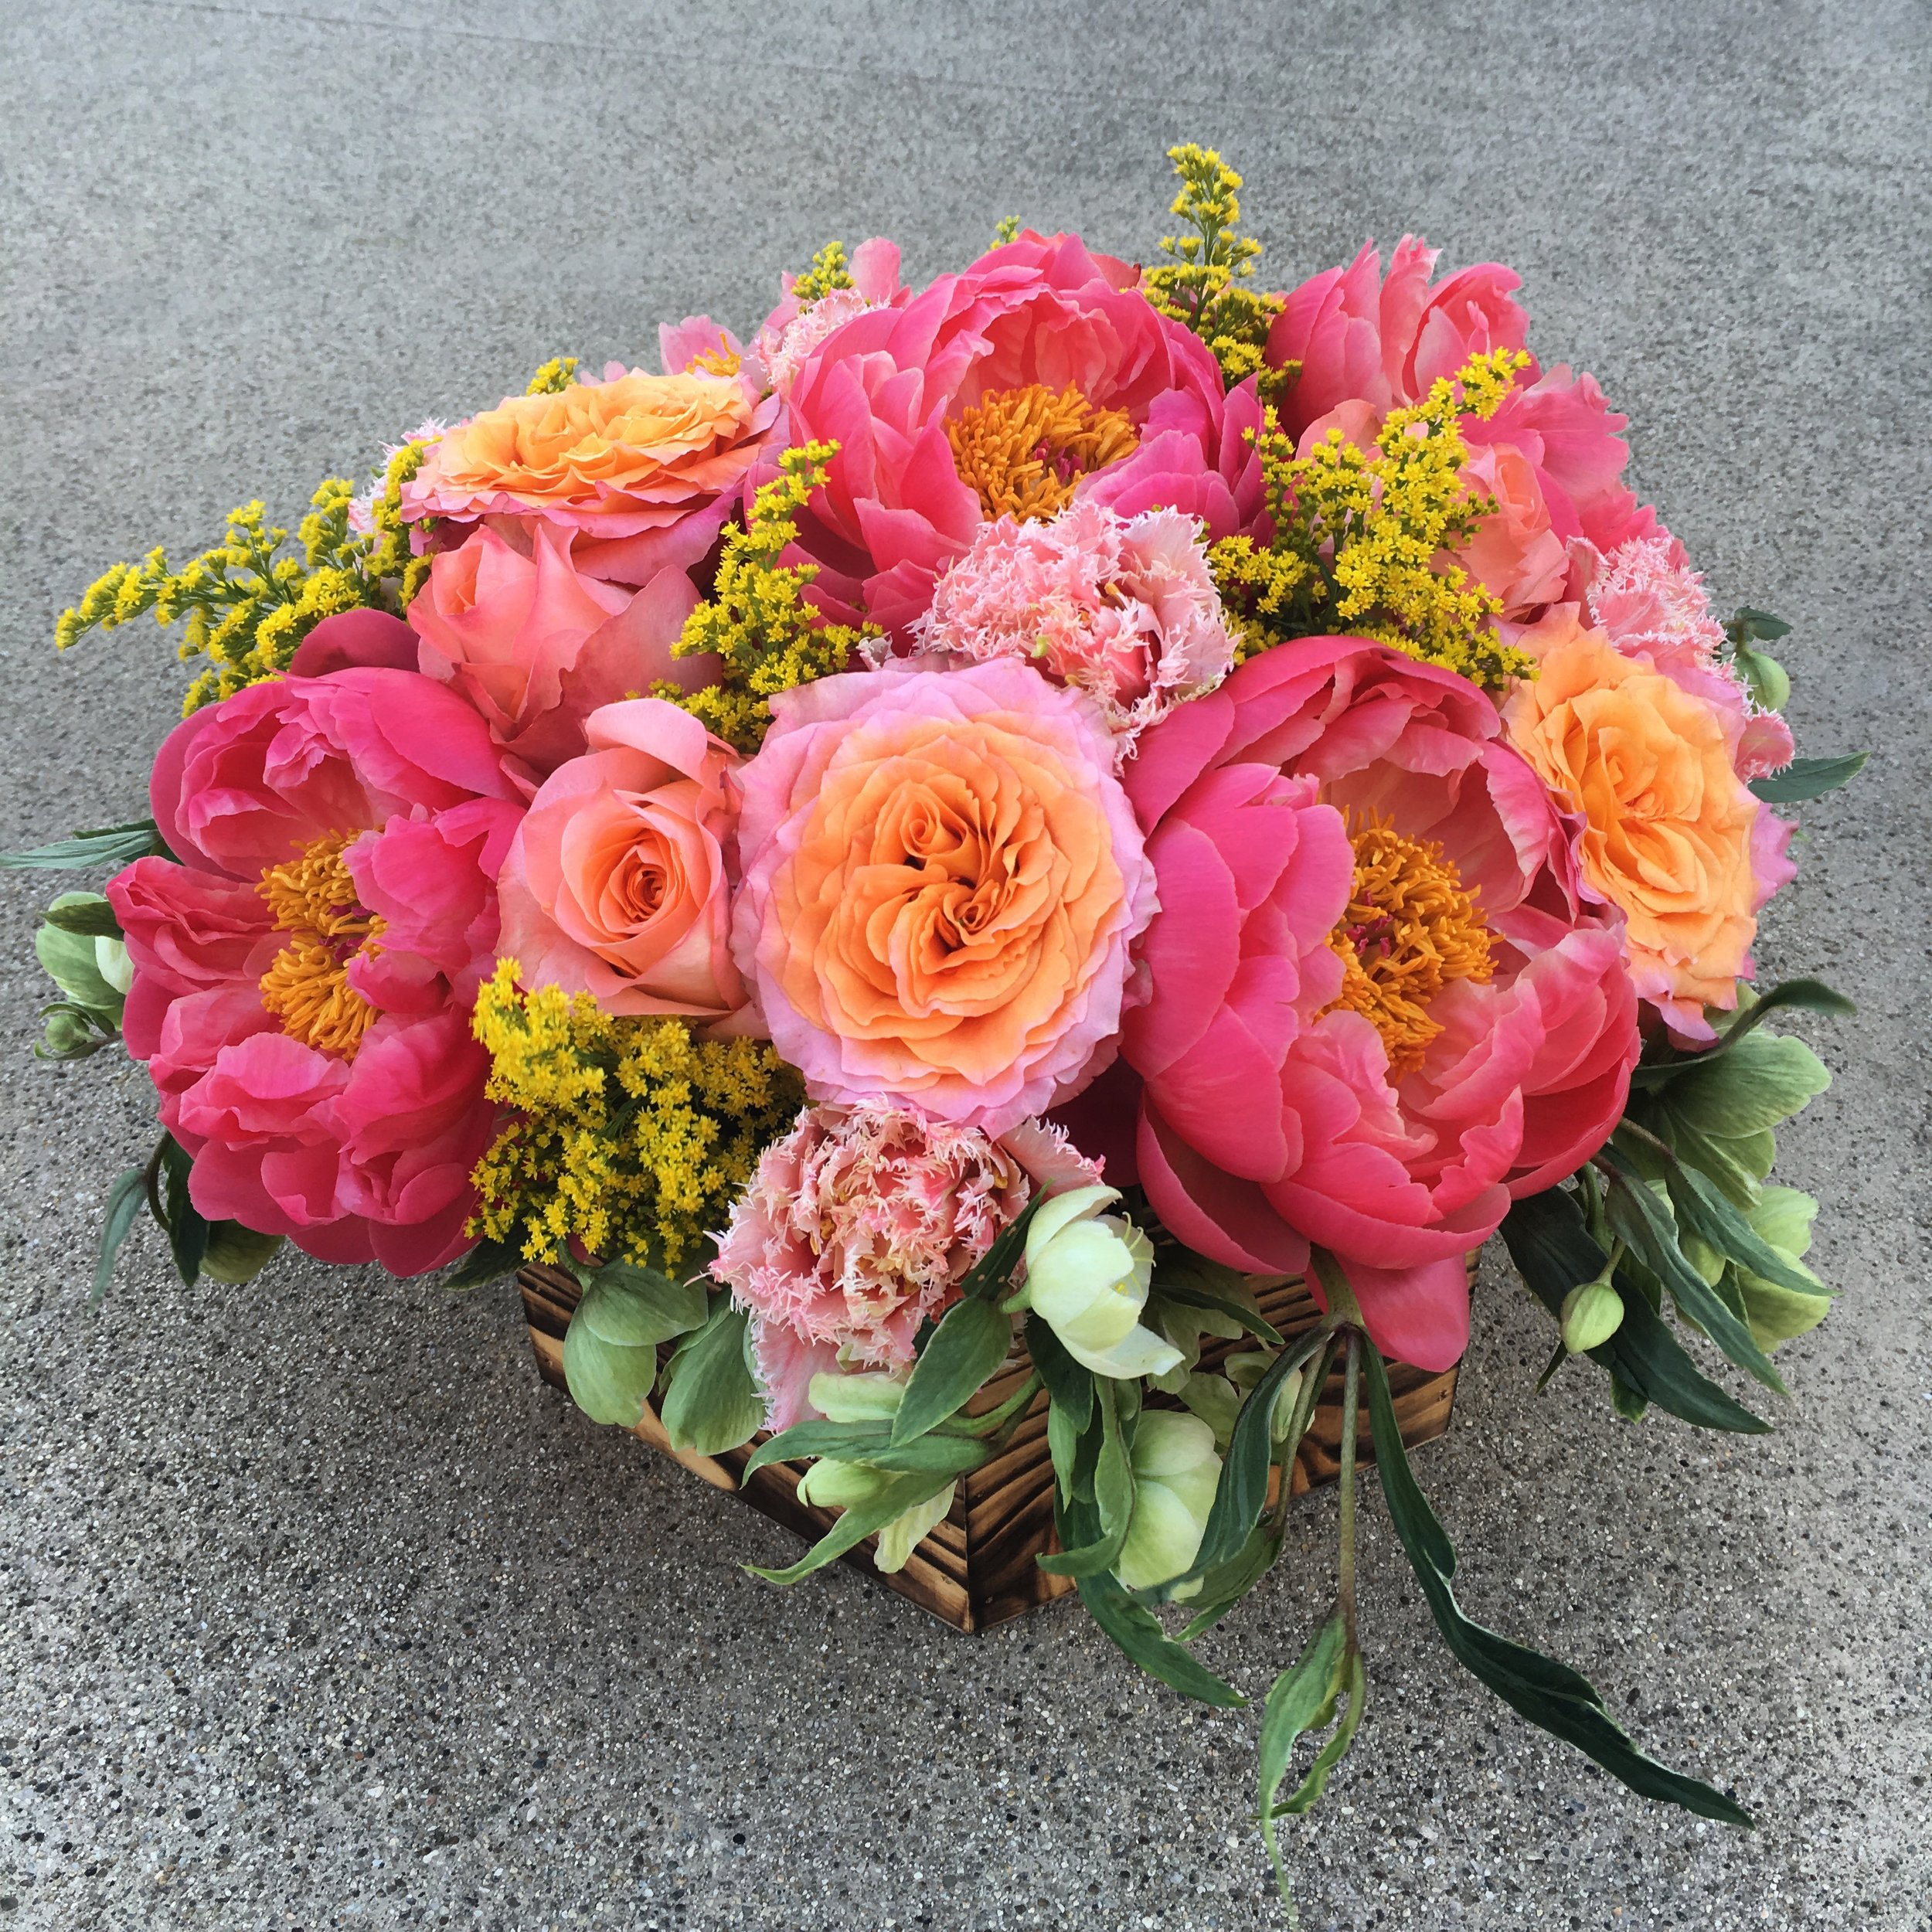 21. Peony and Free Spirit Rose Arrangement